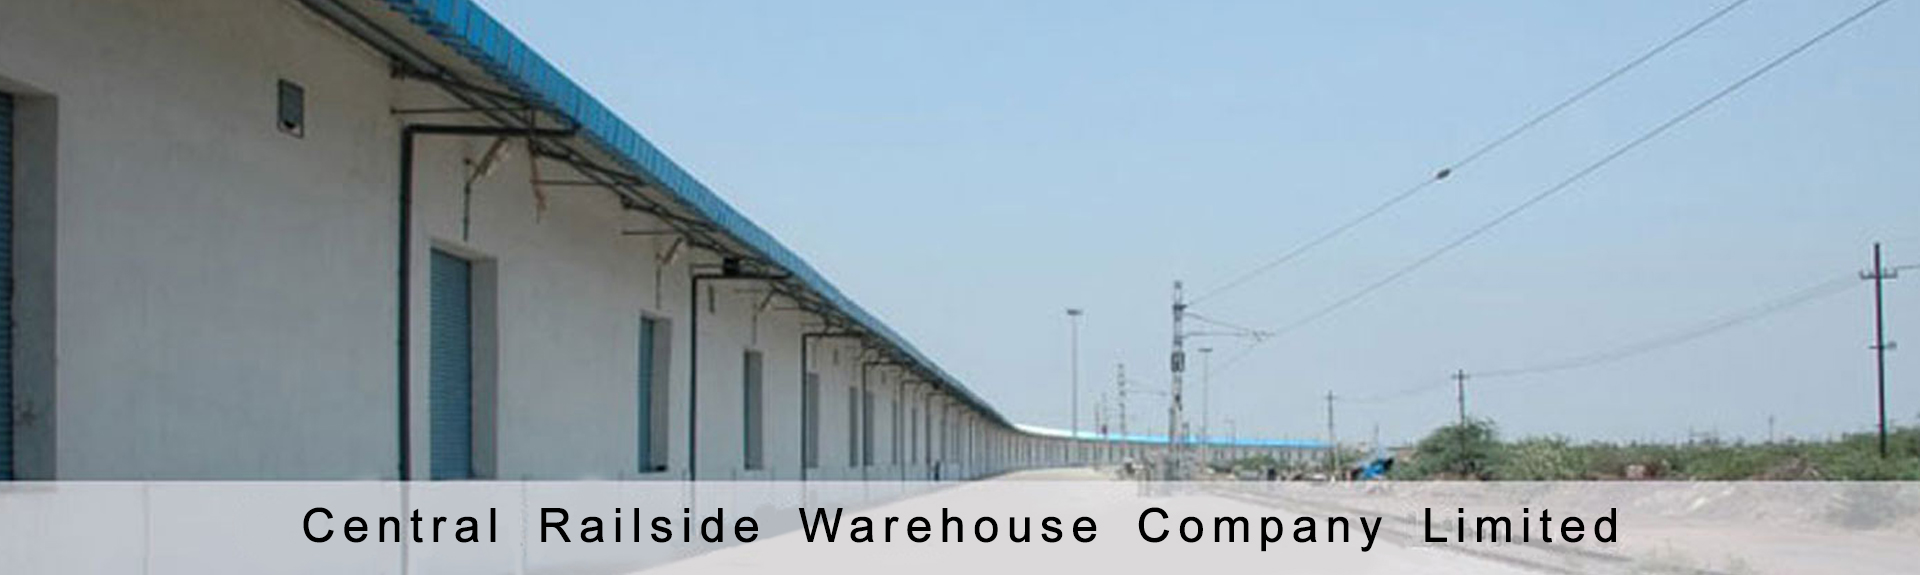 Home | Central Railside Warehouse Company Limited